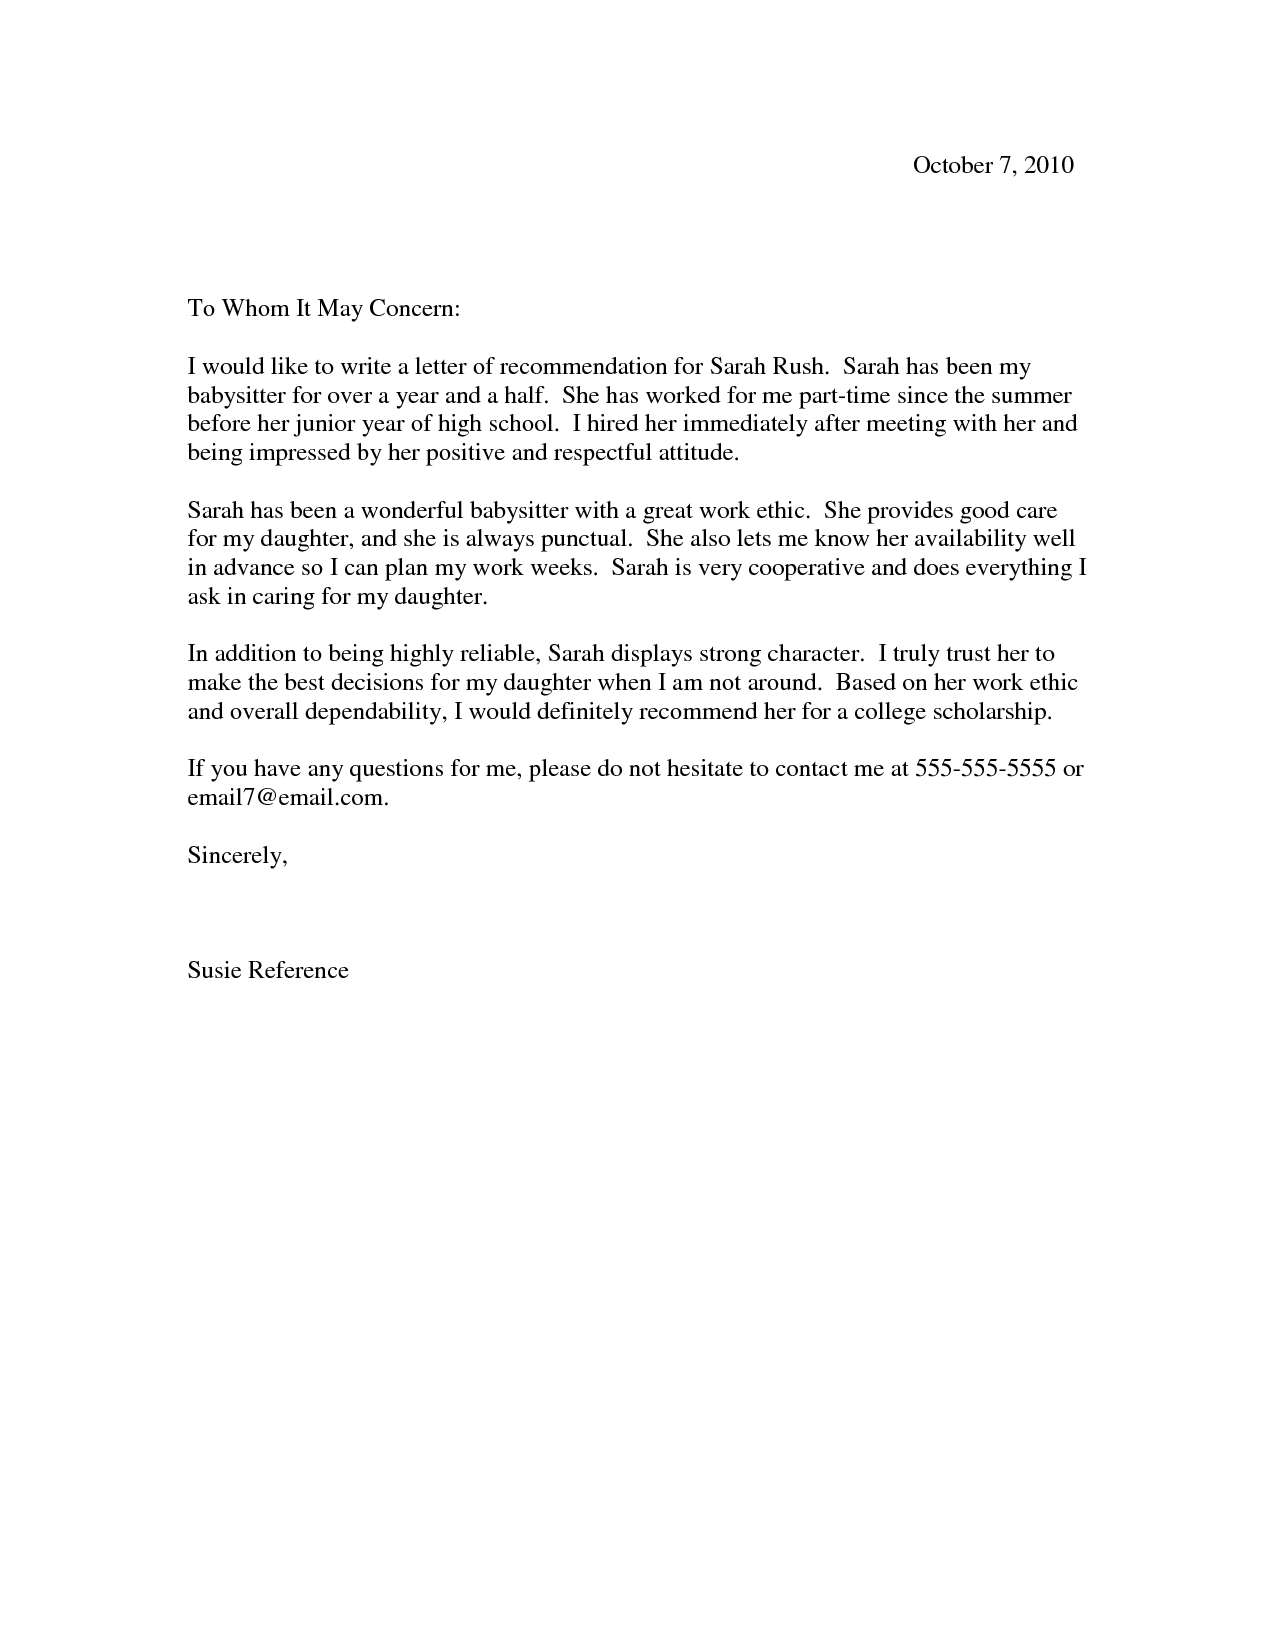 Letters Of Recommendation Samples Letter Of Recommendation Sample